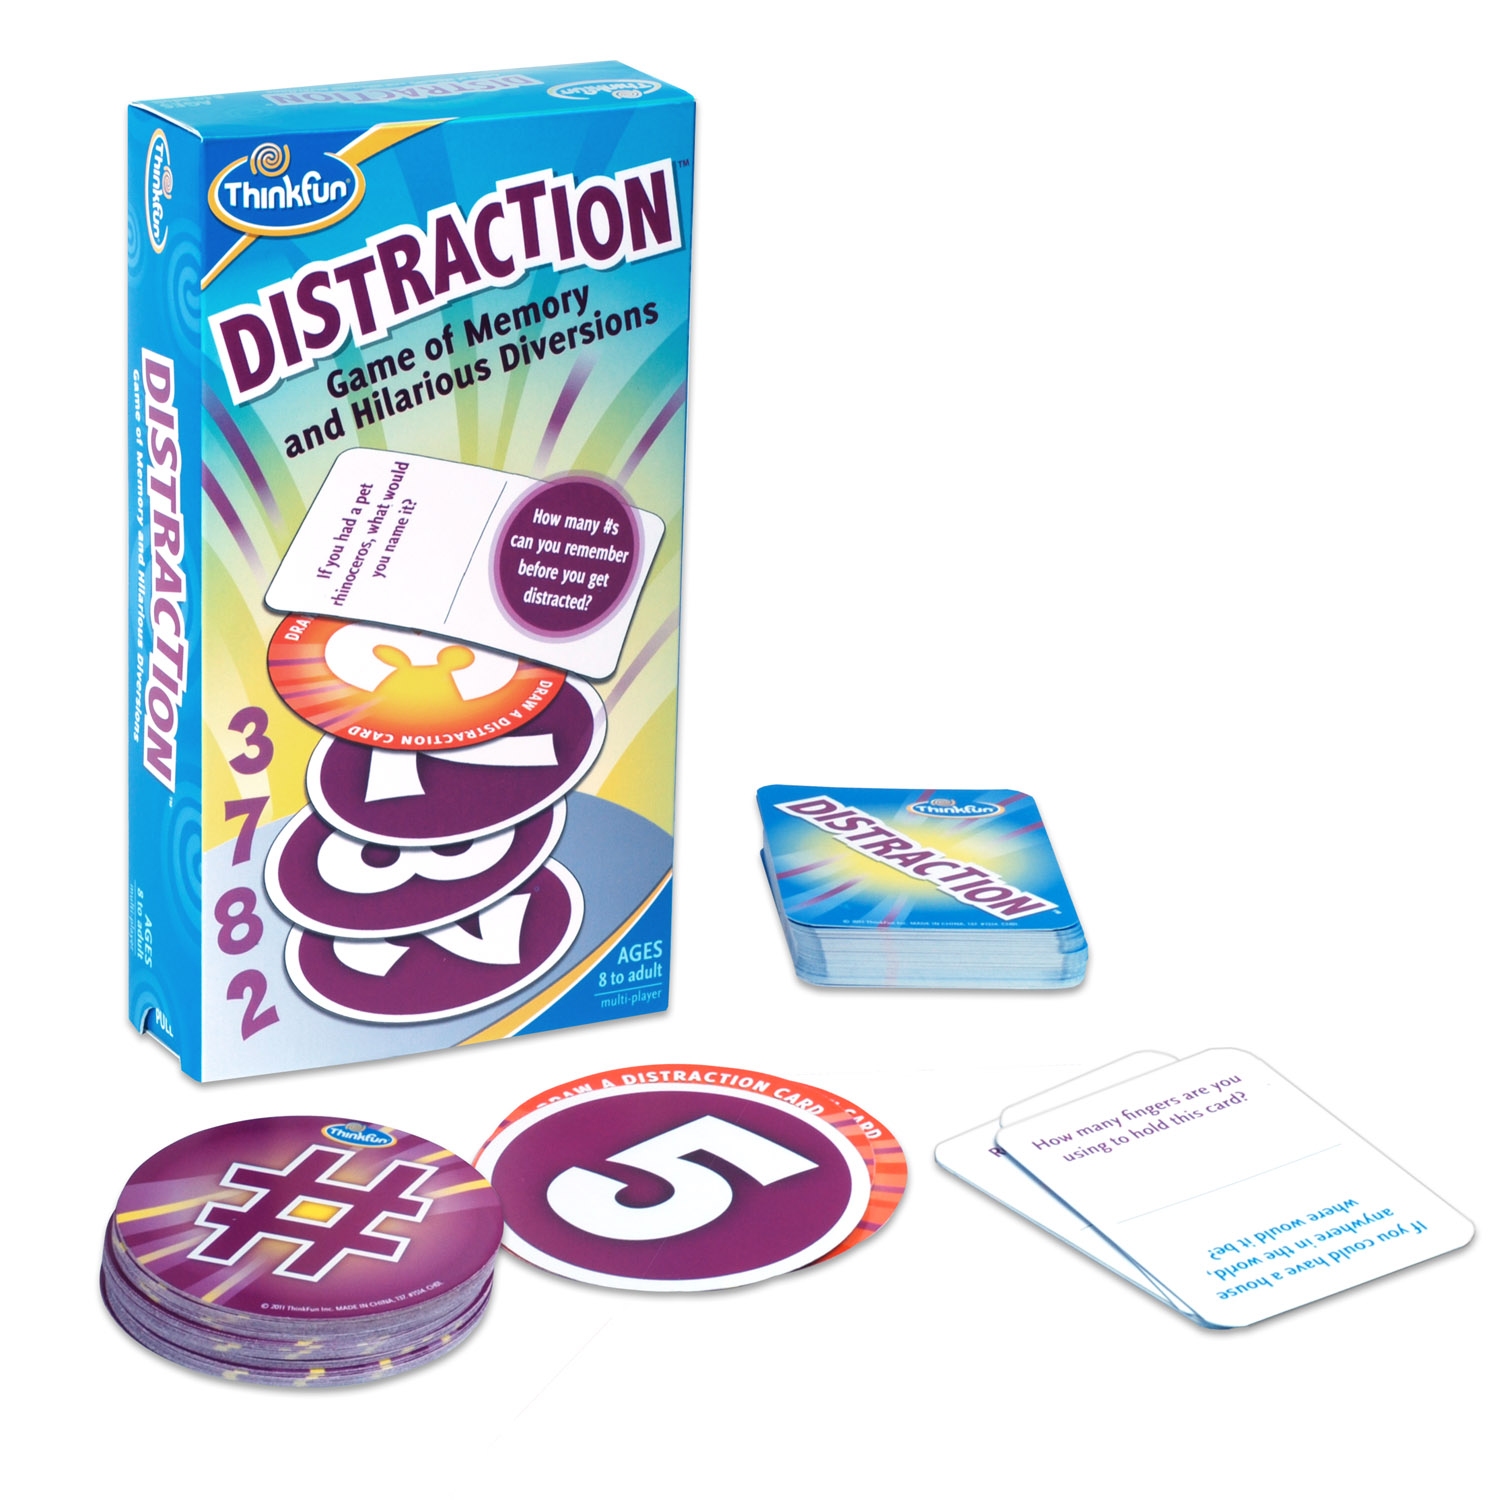 Toys as tools educational toy reviews review and giveaway toys as tools educational toy reviews review and giveaway distraction game discover yourself through laughter solutioingenieria Choice Image